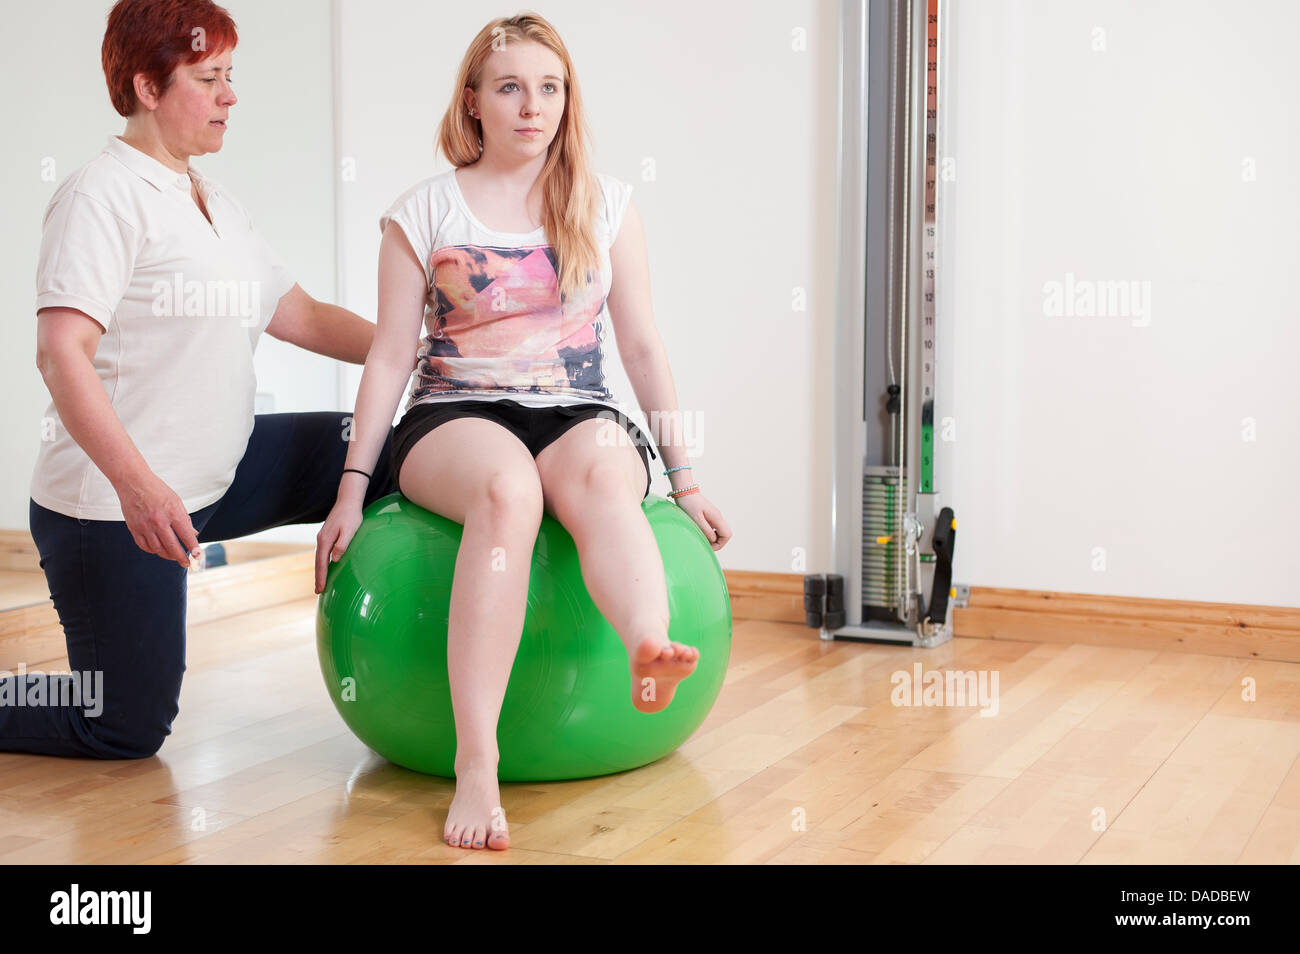 Young woman sitting on fitness ball, being guided by mature woman - Stock Image